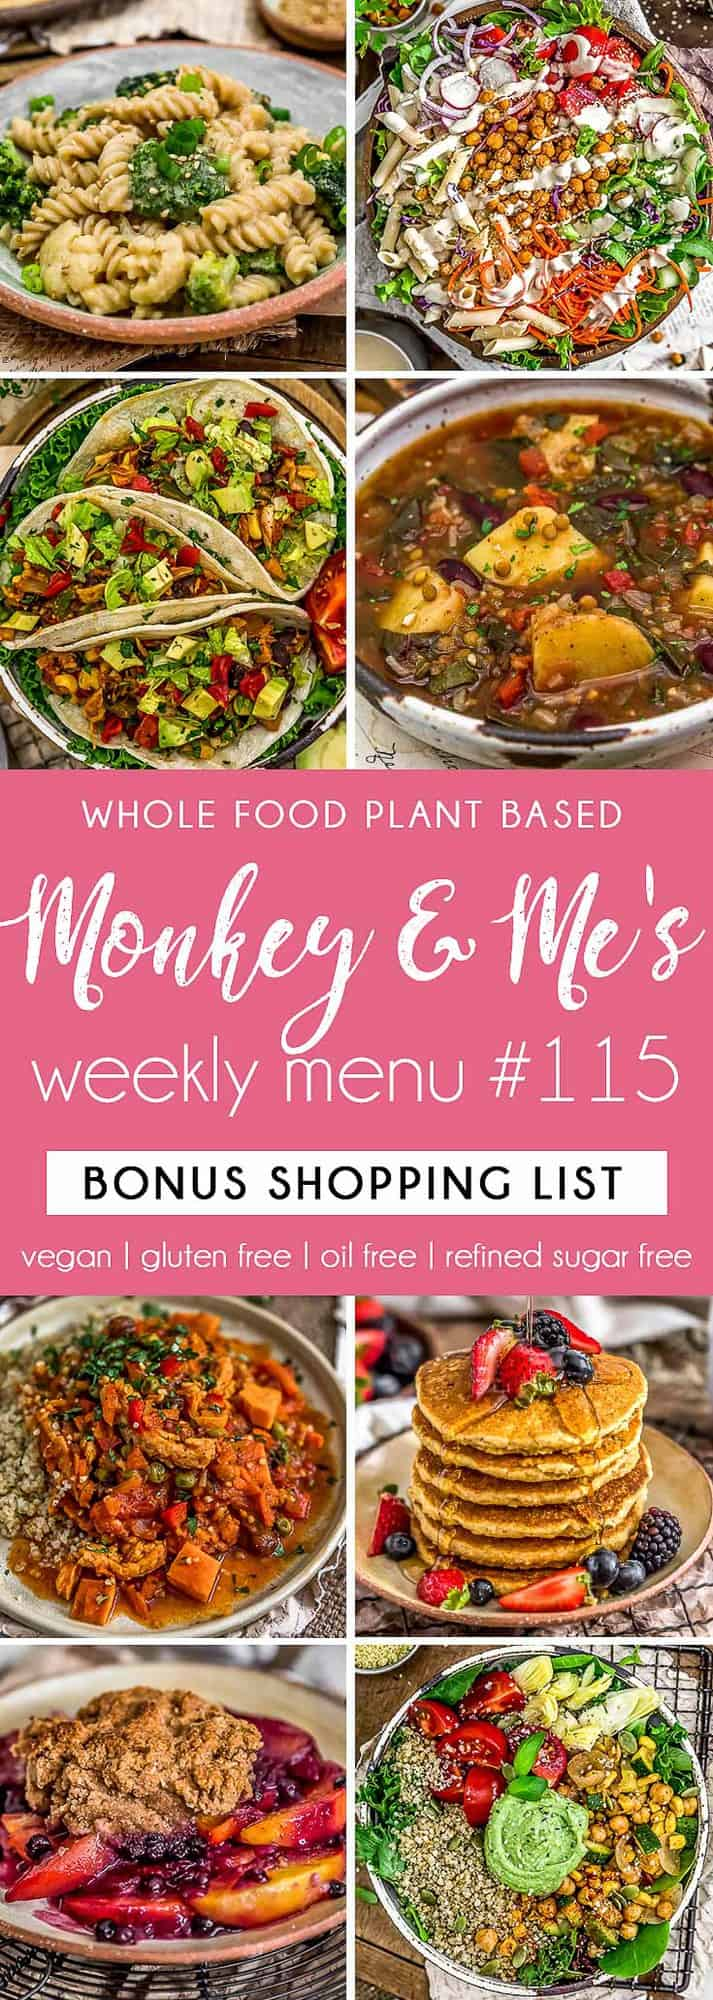 Monkey and Me's Menu 115 featuring 8 recipes